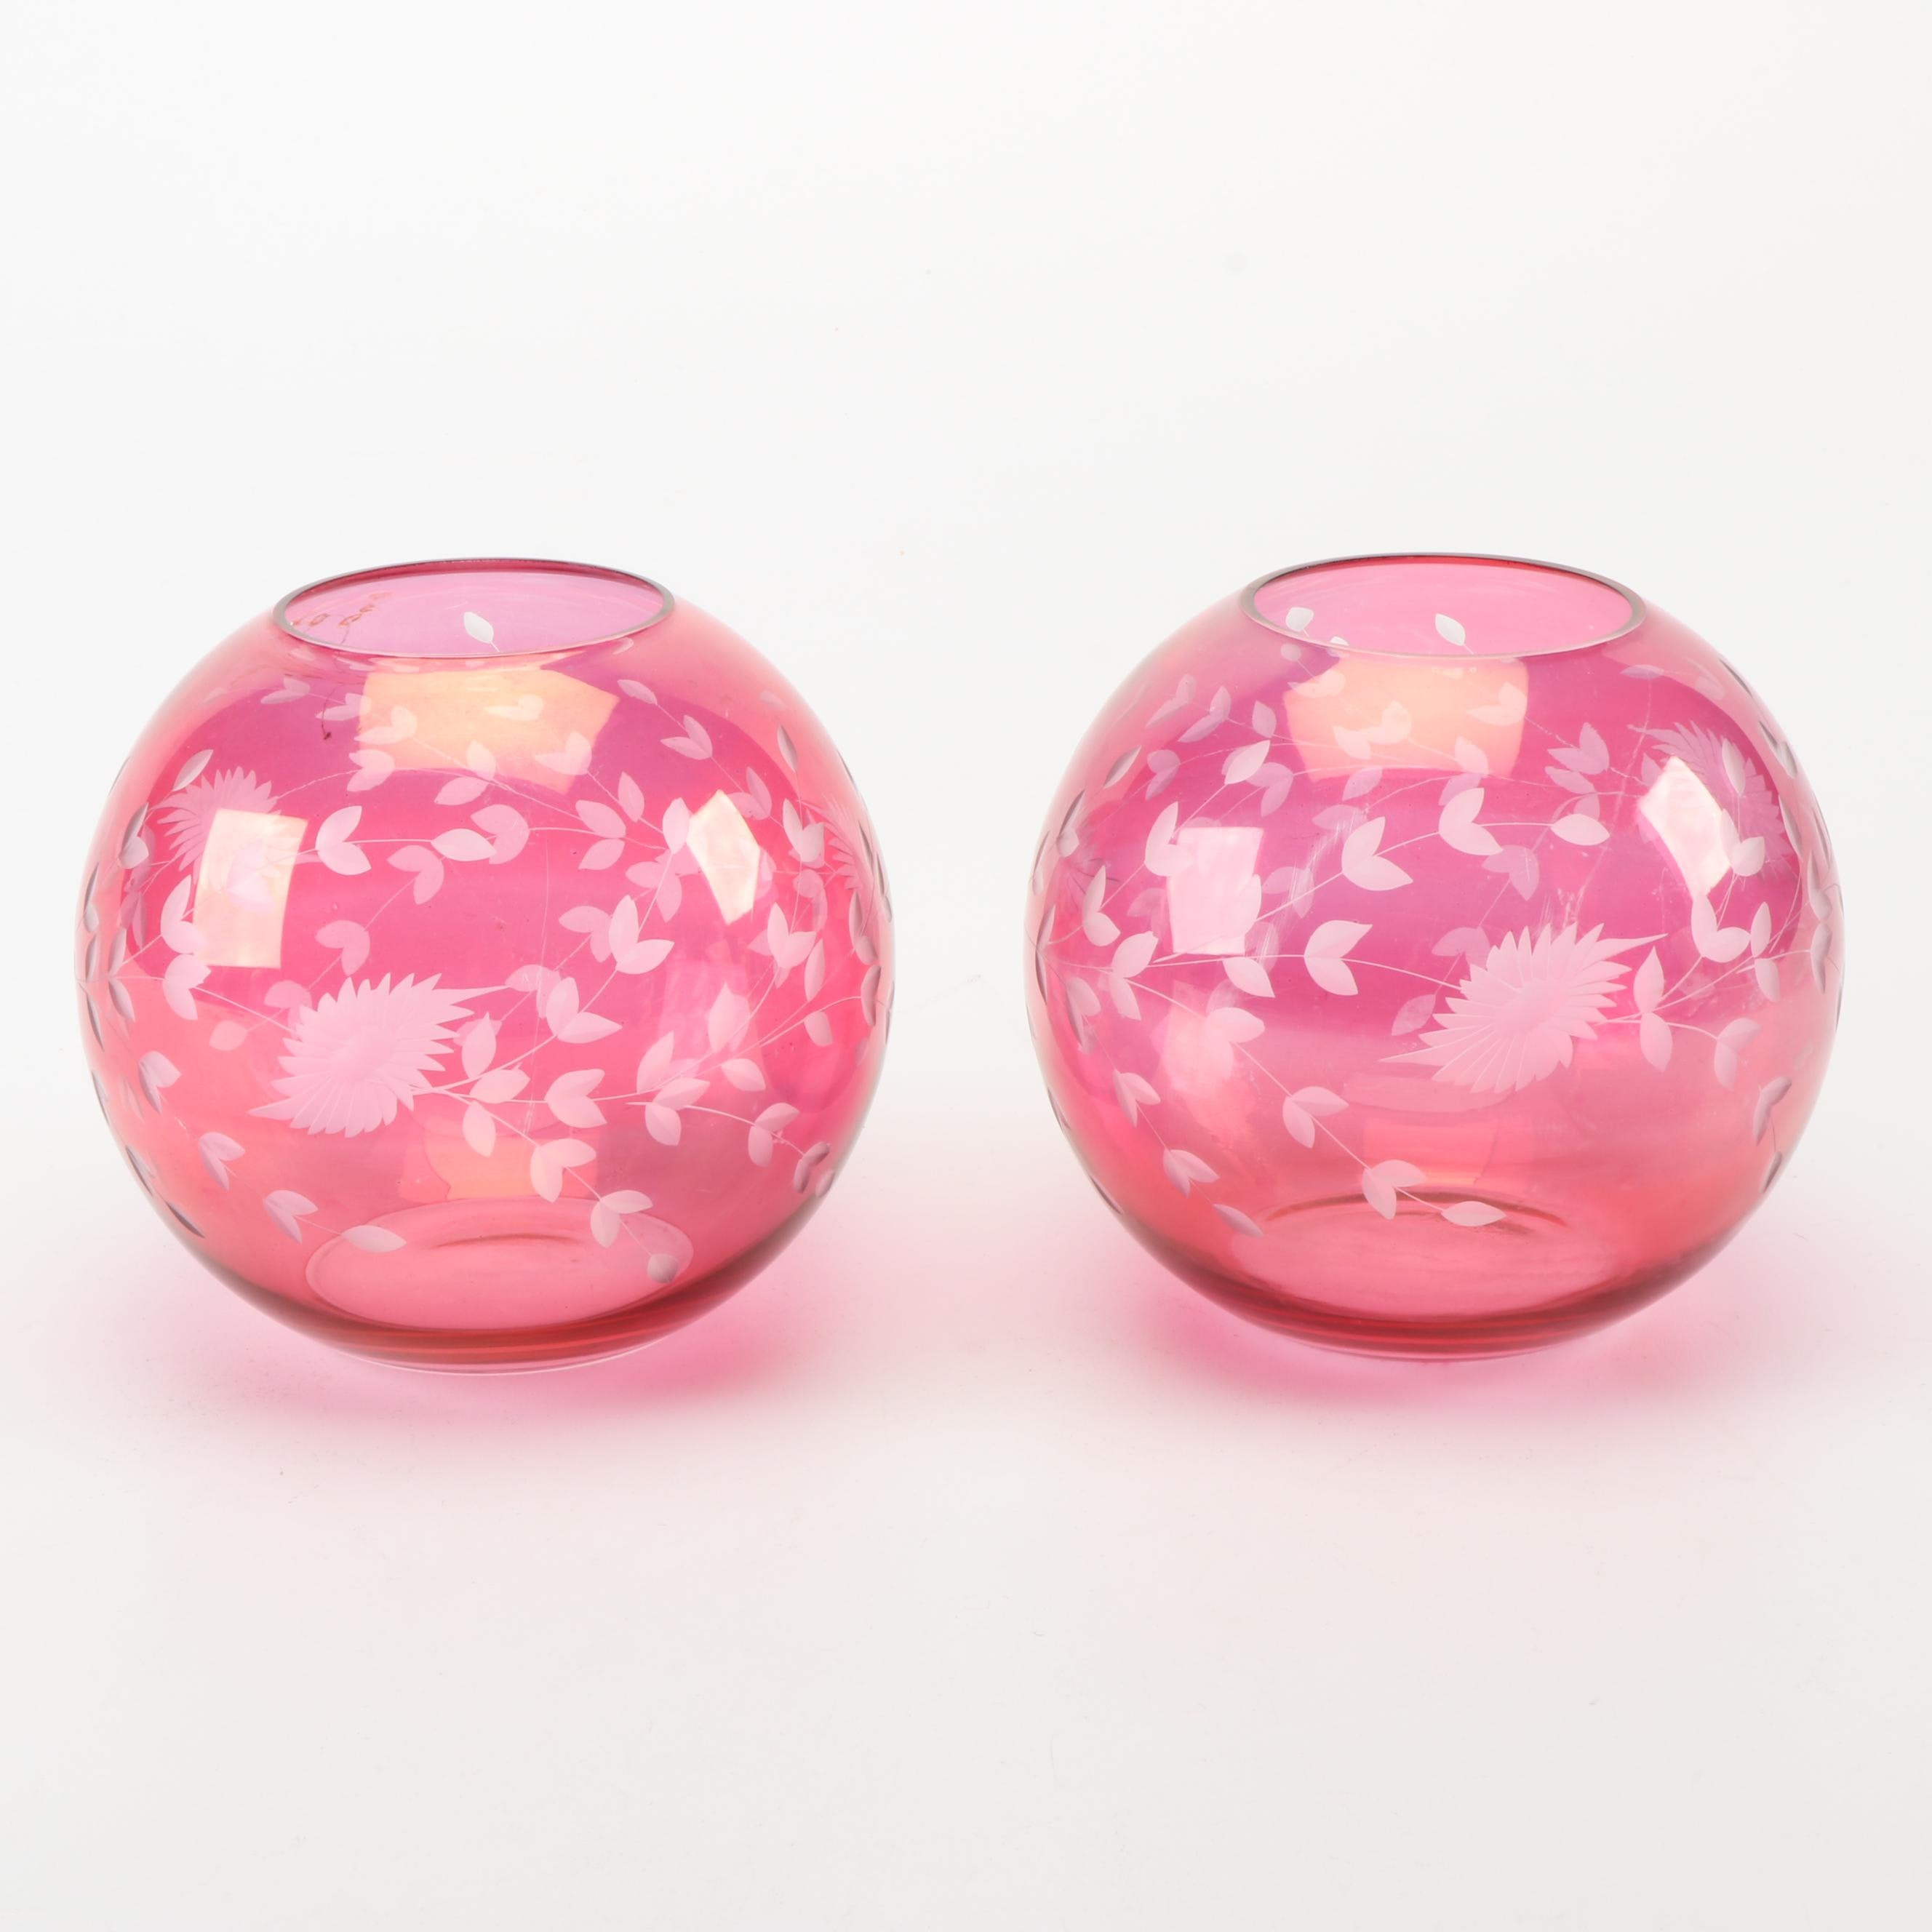 Floral Themed Glass Globe Bowls